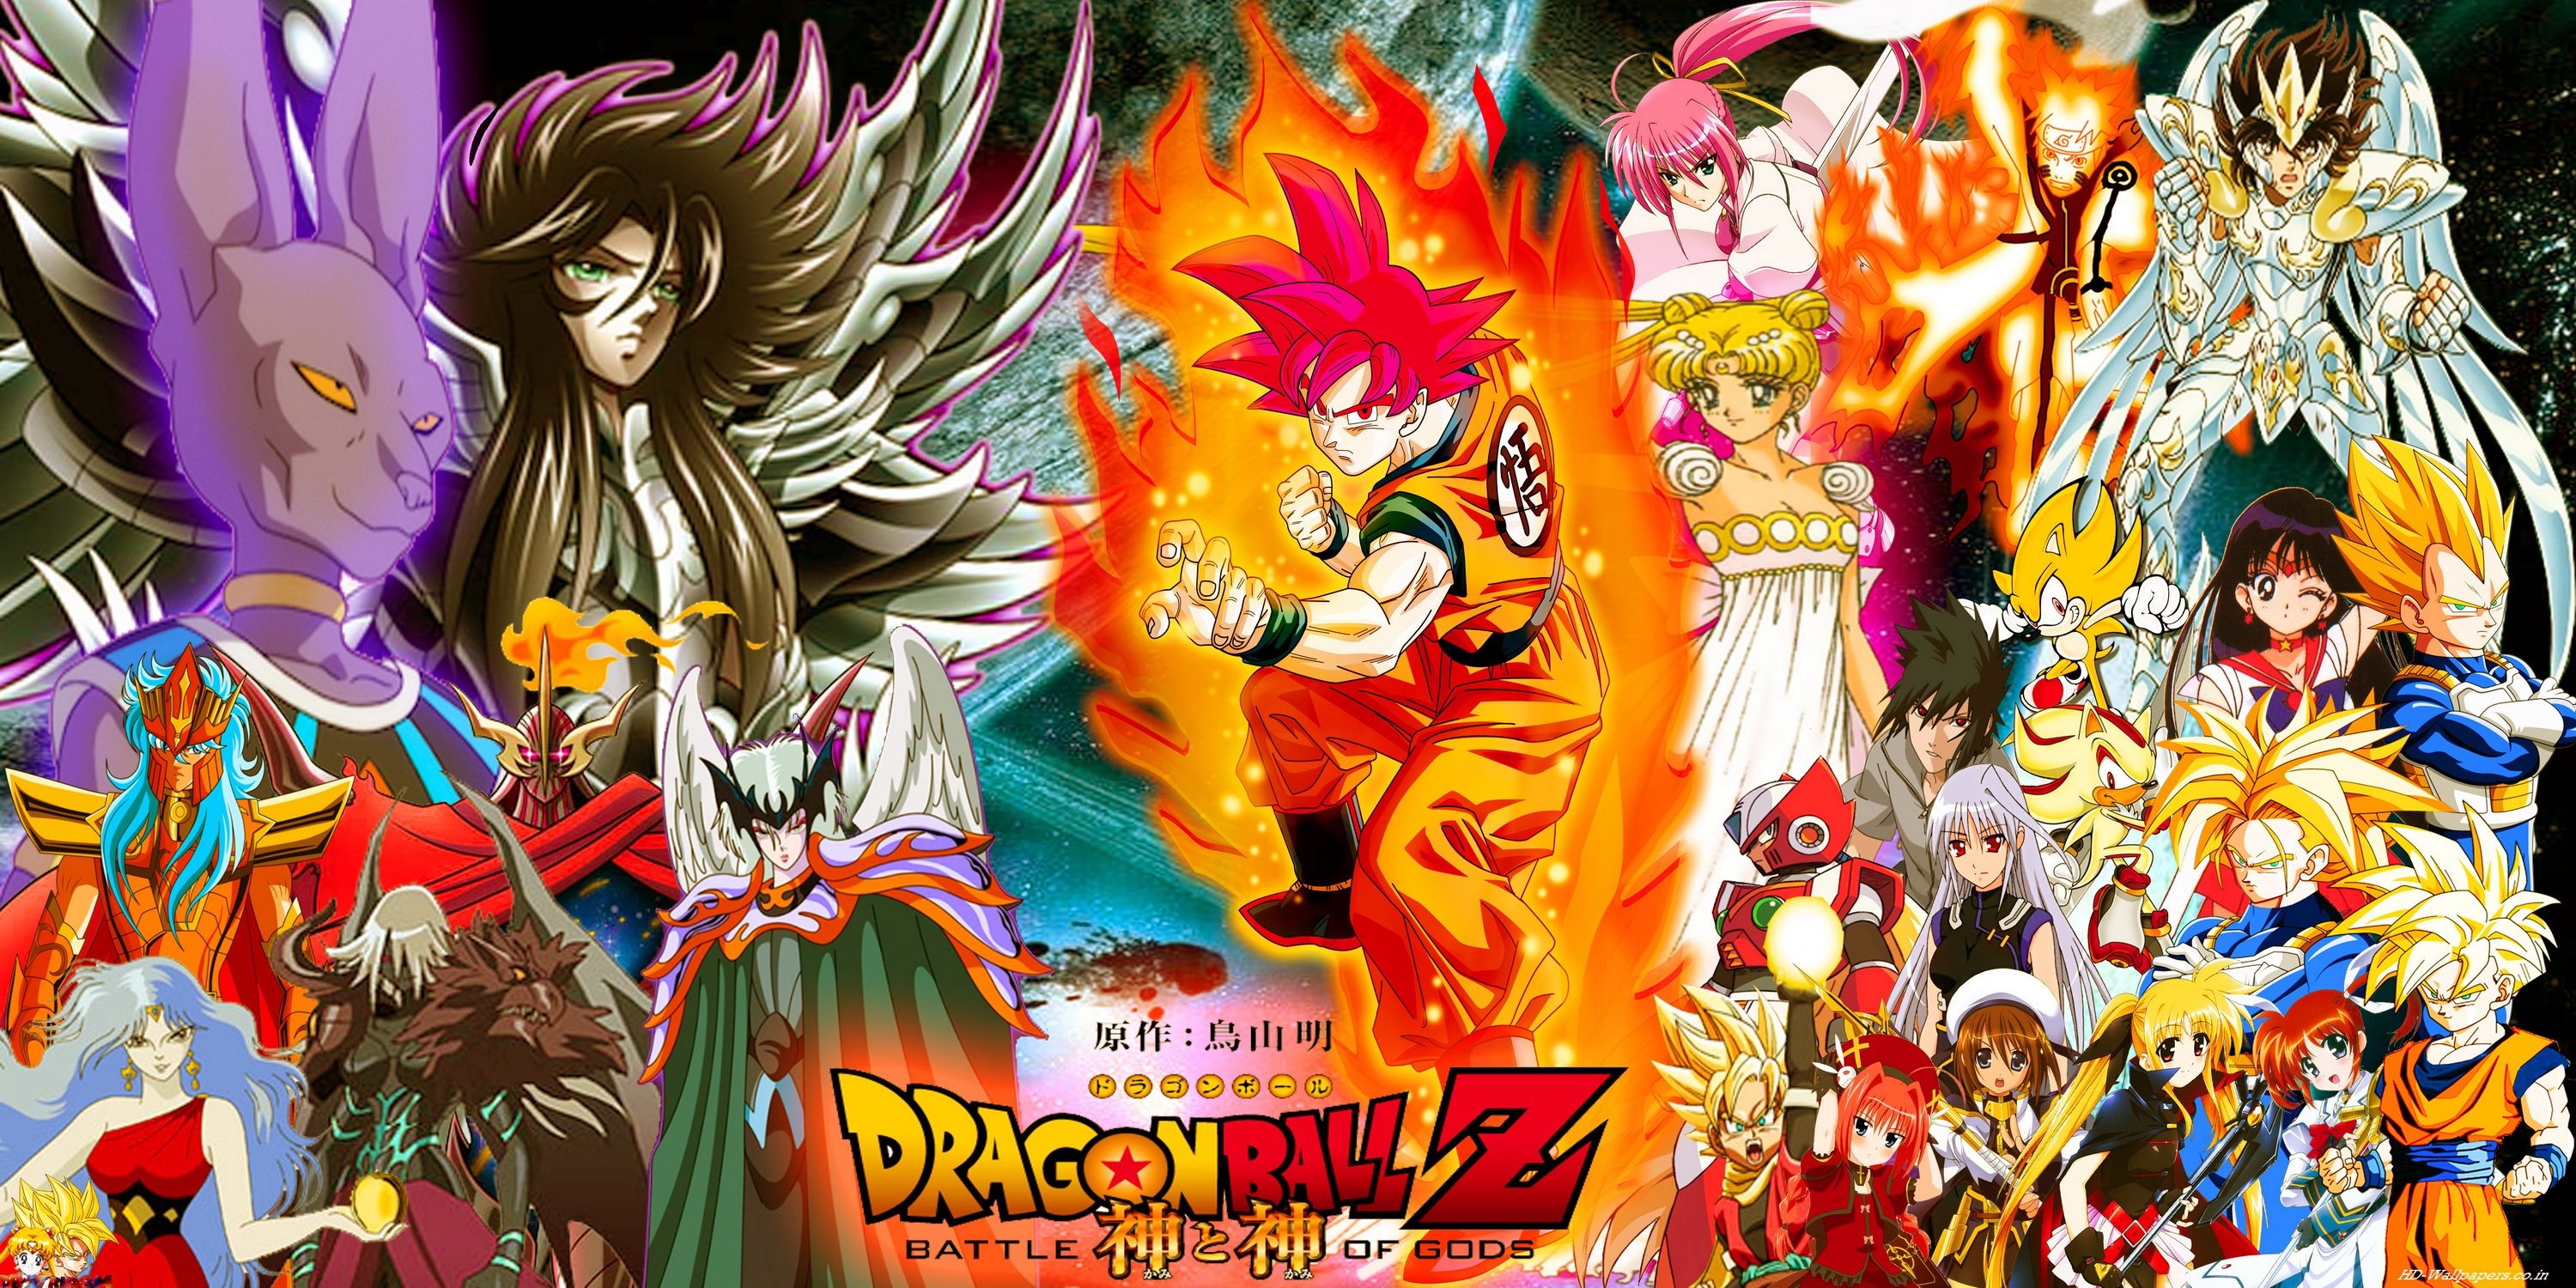 ... Dragon Ball Z Wallpaper